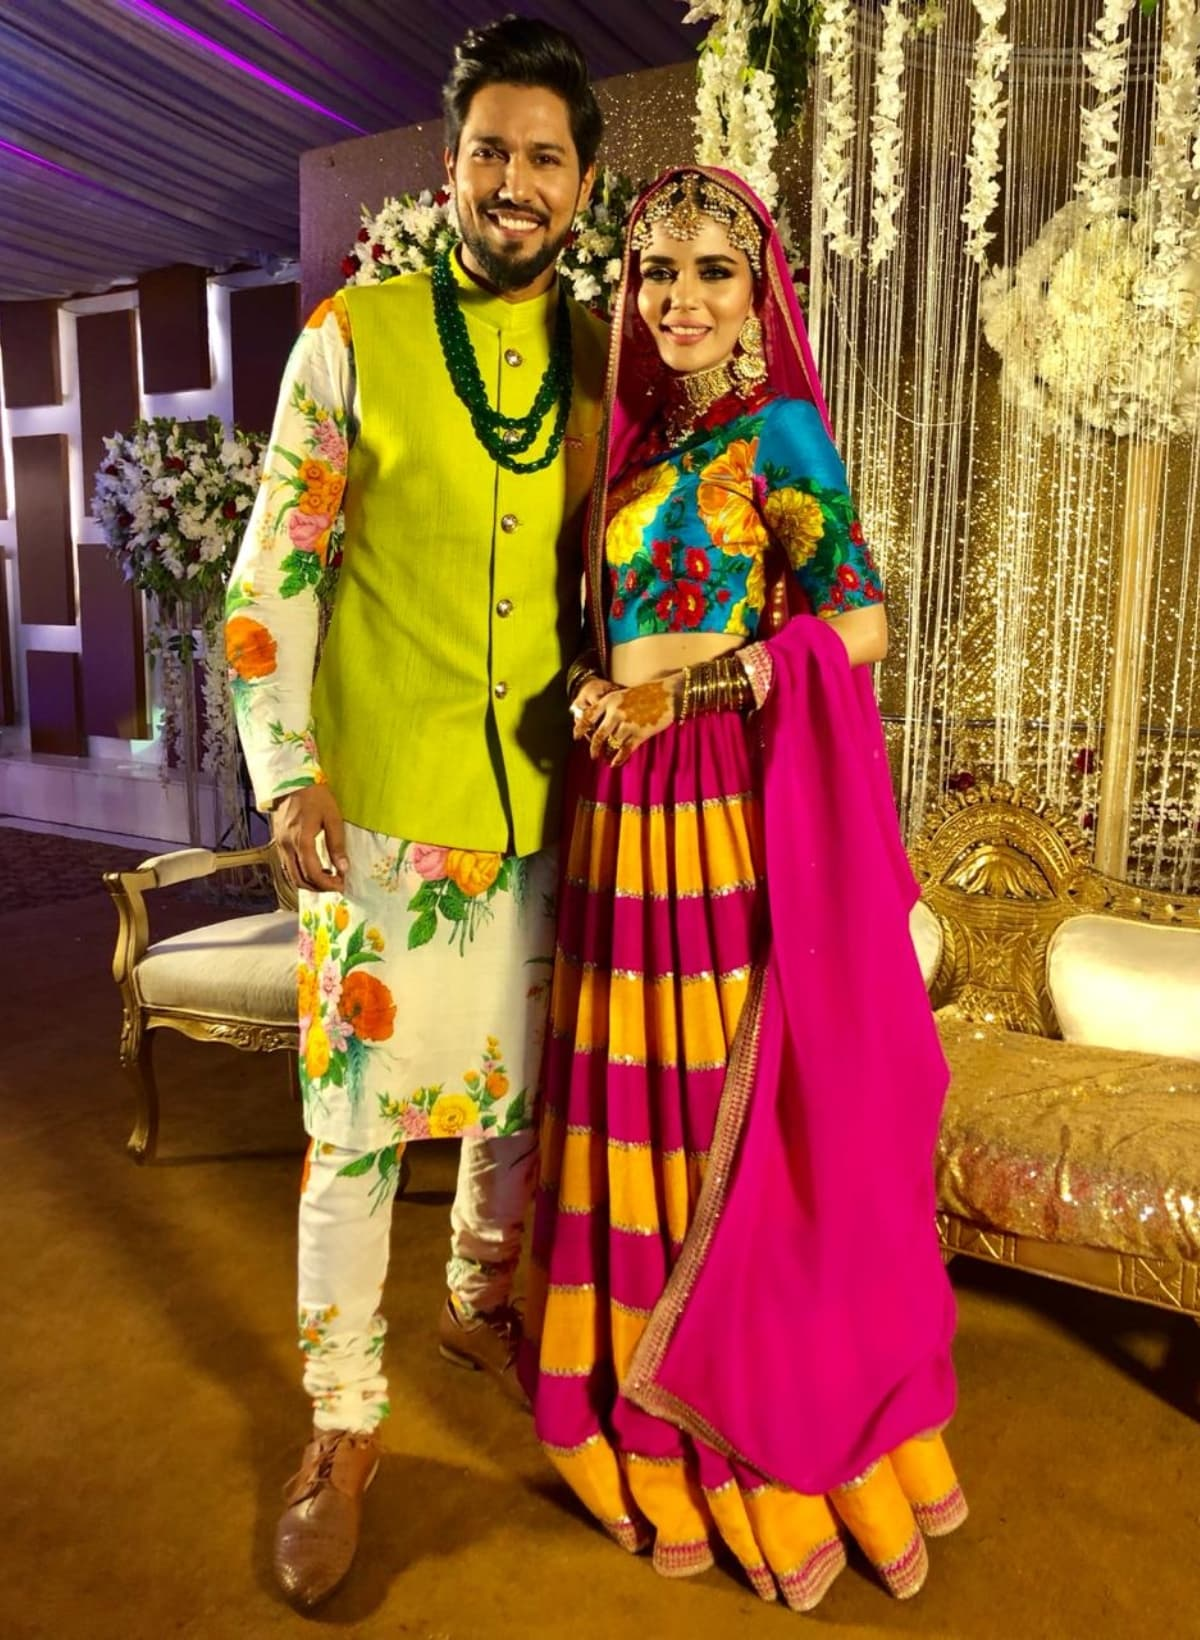 The bride Faiza Ashfaq opted for the same Sabyasachi outfit worn by Anushka Sharma at her mehendi ceremony